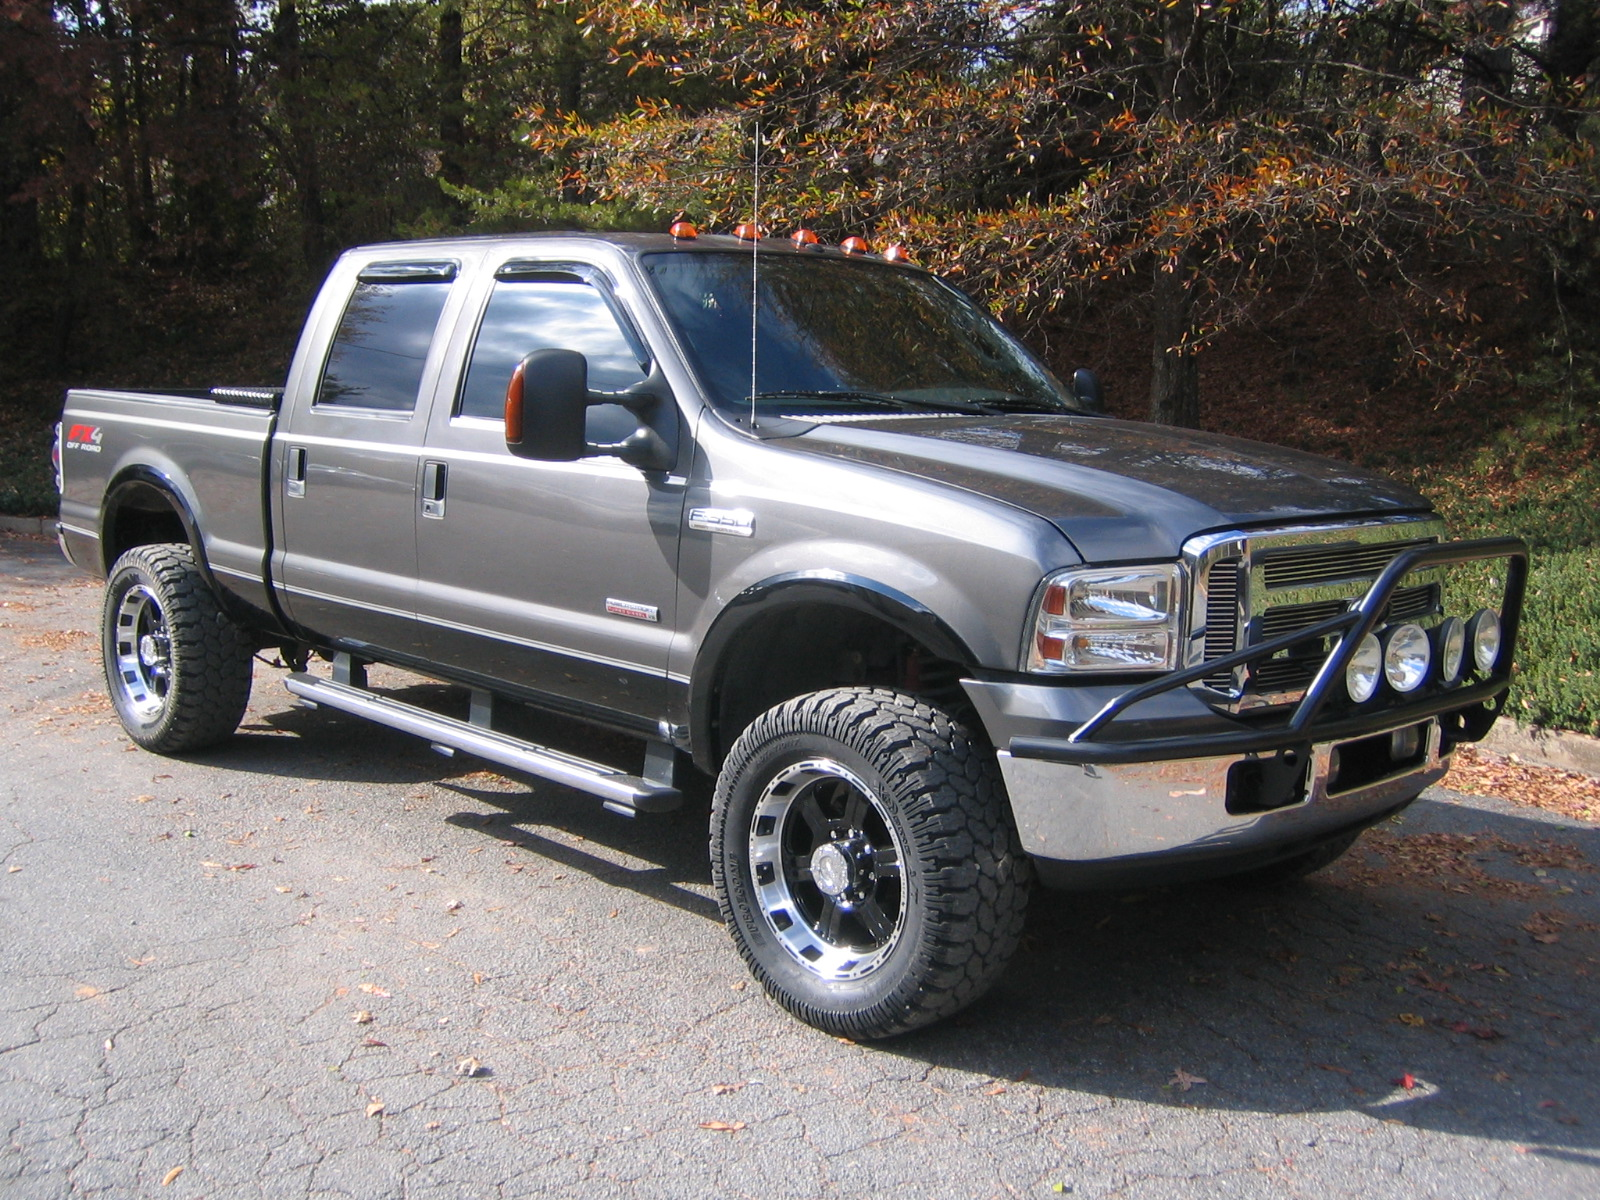 Ford F-350 Super Duty #9